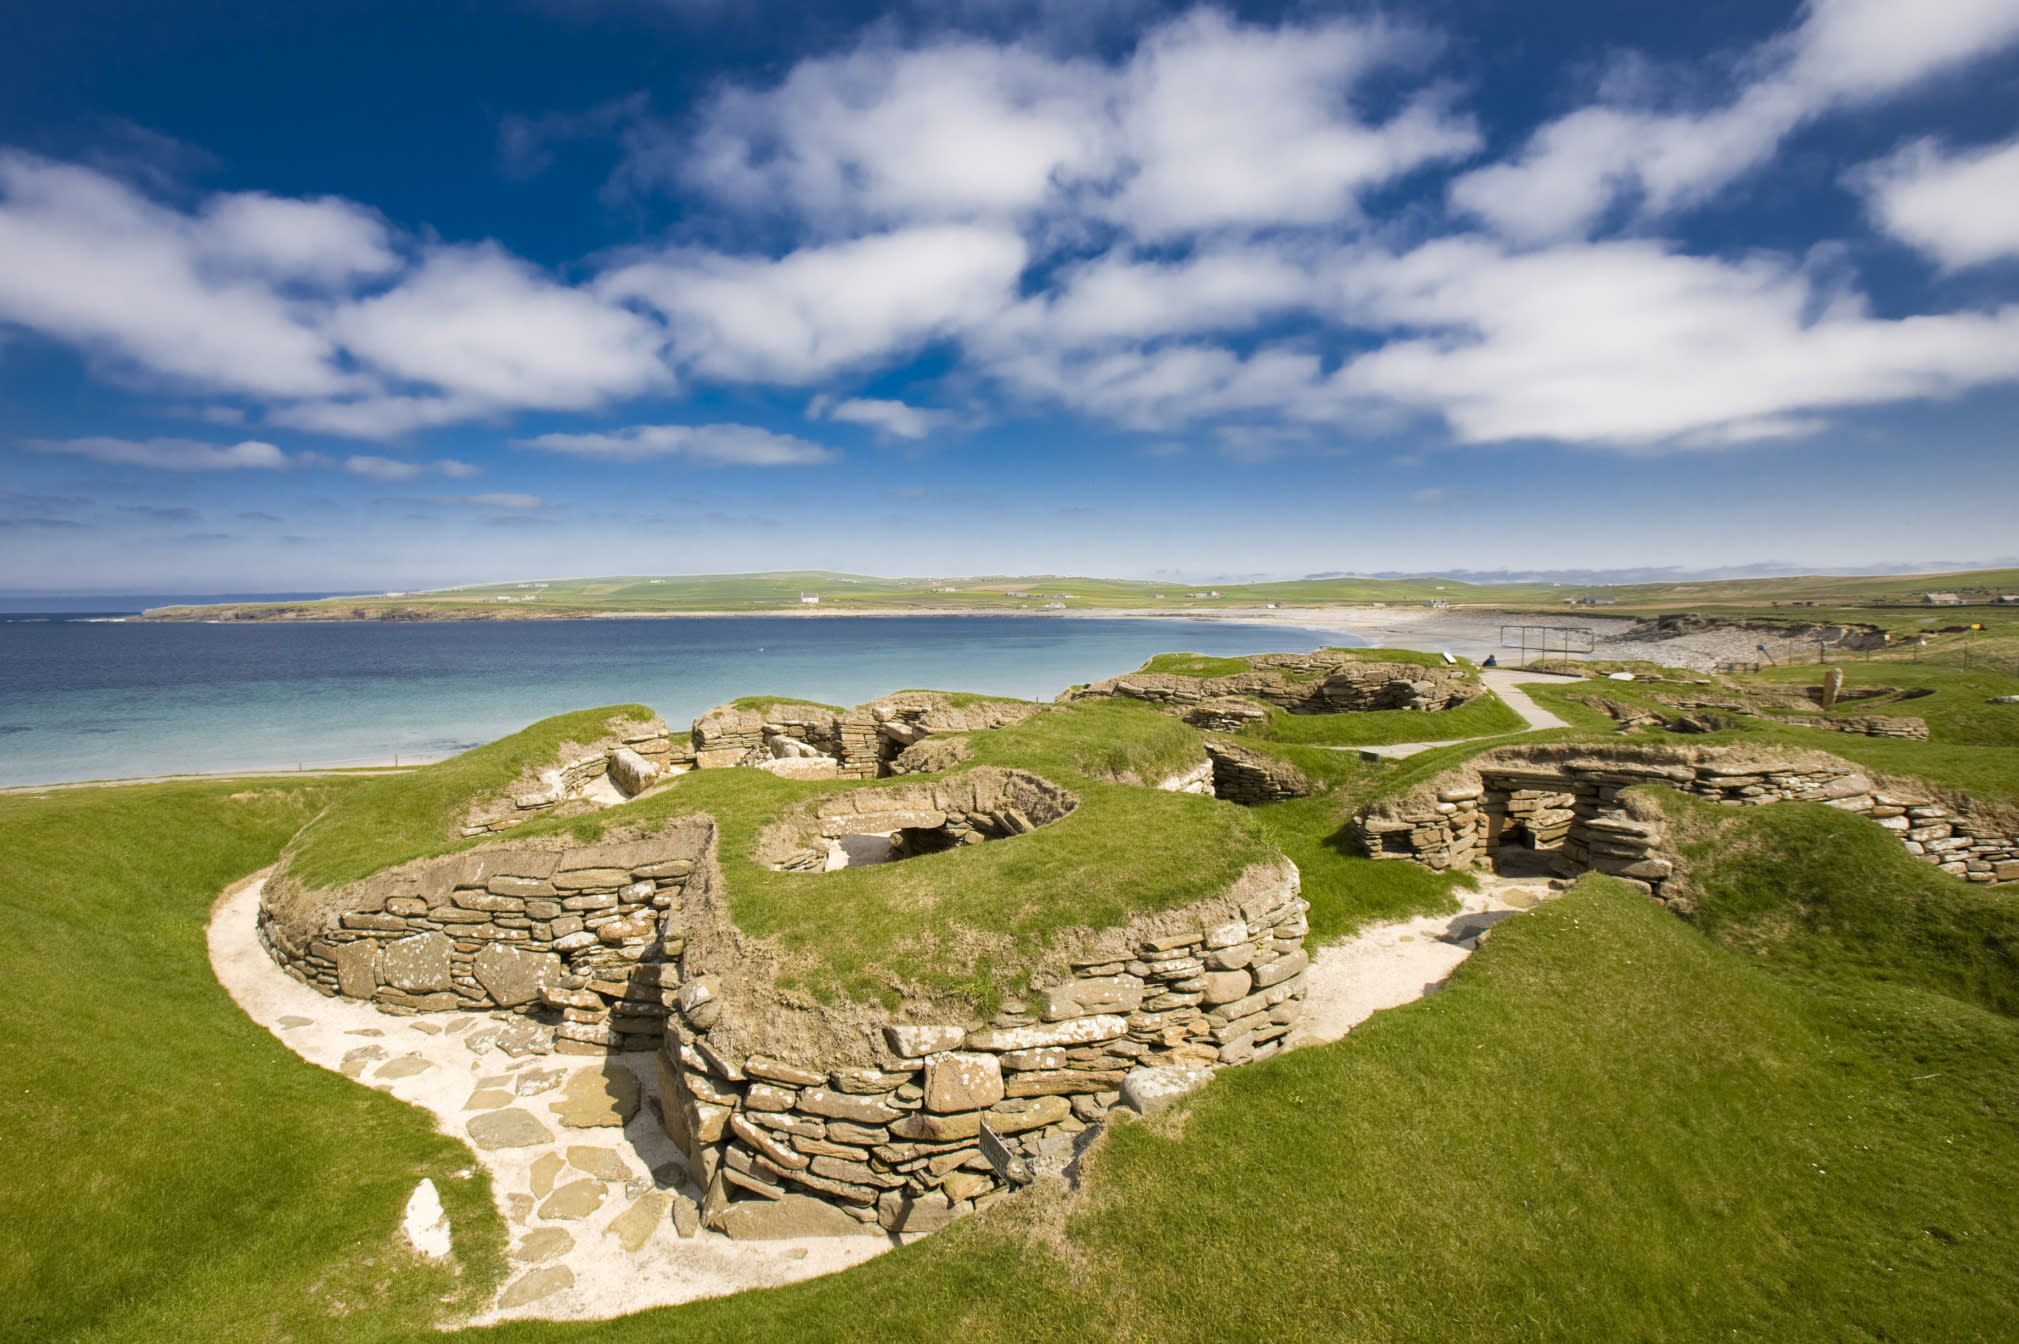 <p>Thisis the main island of the Orkneys and 75 per cent of the islands' population live there. Make the mainland your base as you explore the 70 other islands that make up the archhipelago off the north Scottish coast.</p>  <p></p>